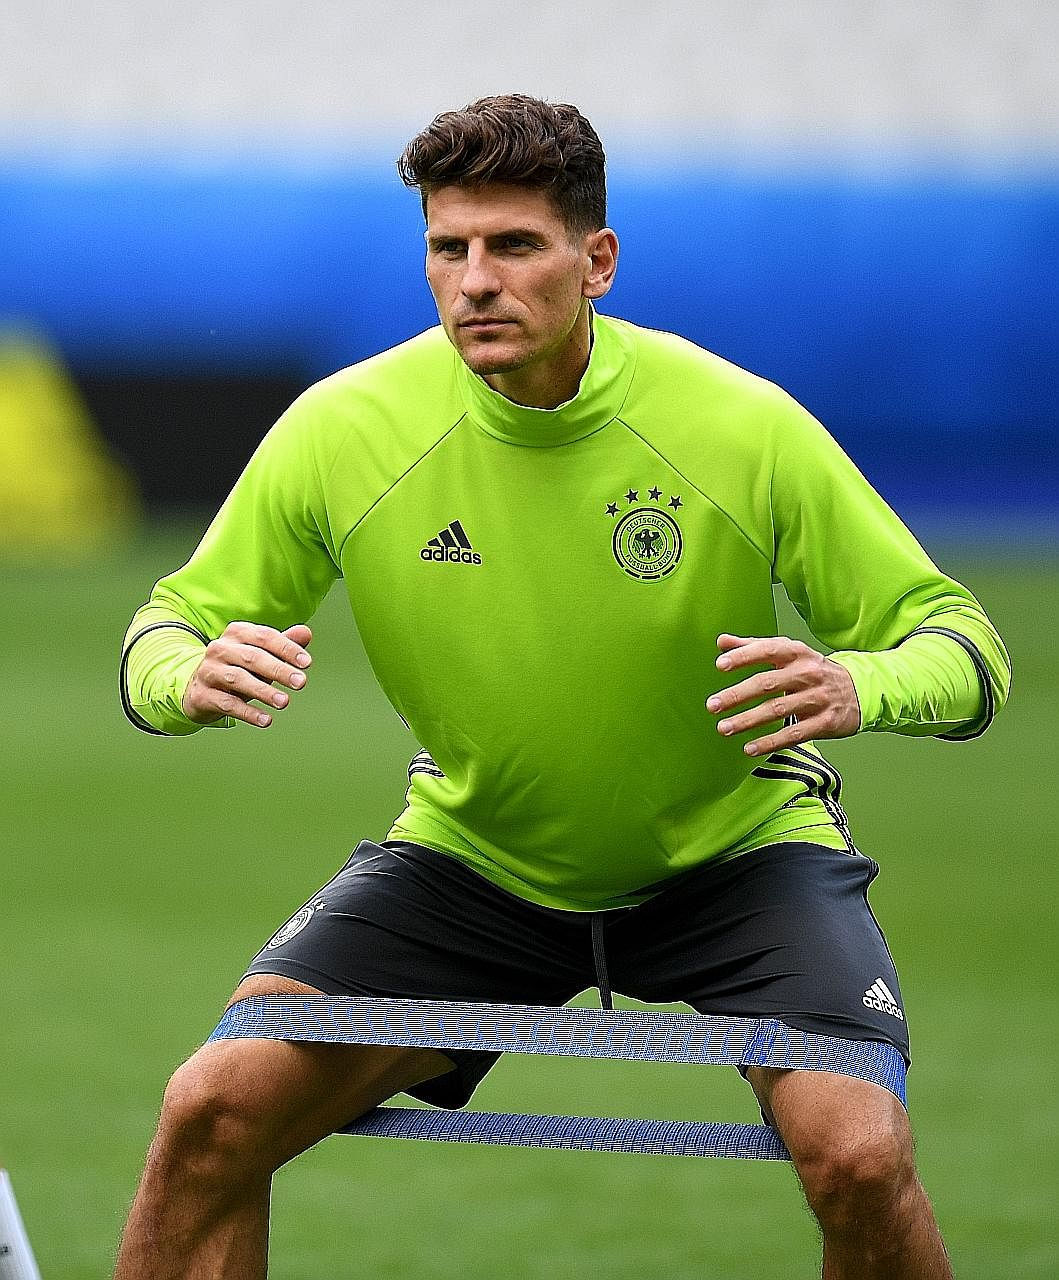 Germany striker Mario Gomez warming up with a rubber band during training. The Germans have been reaping the benefits from Patrick Broome's addition to the backroom staff along with his yoga methods.